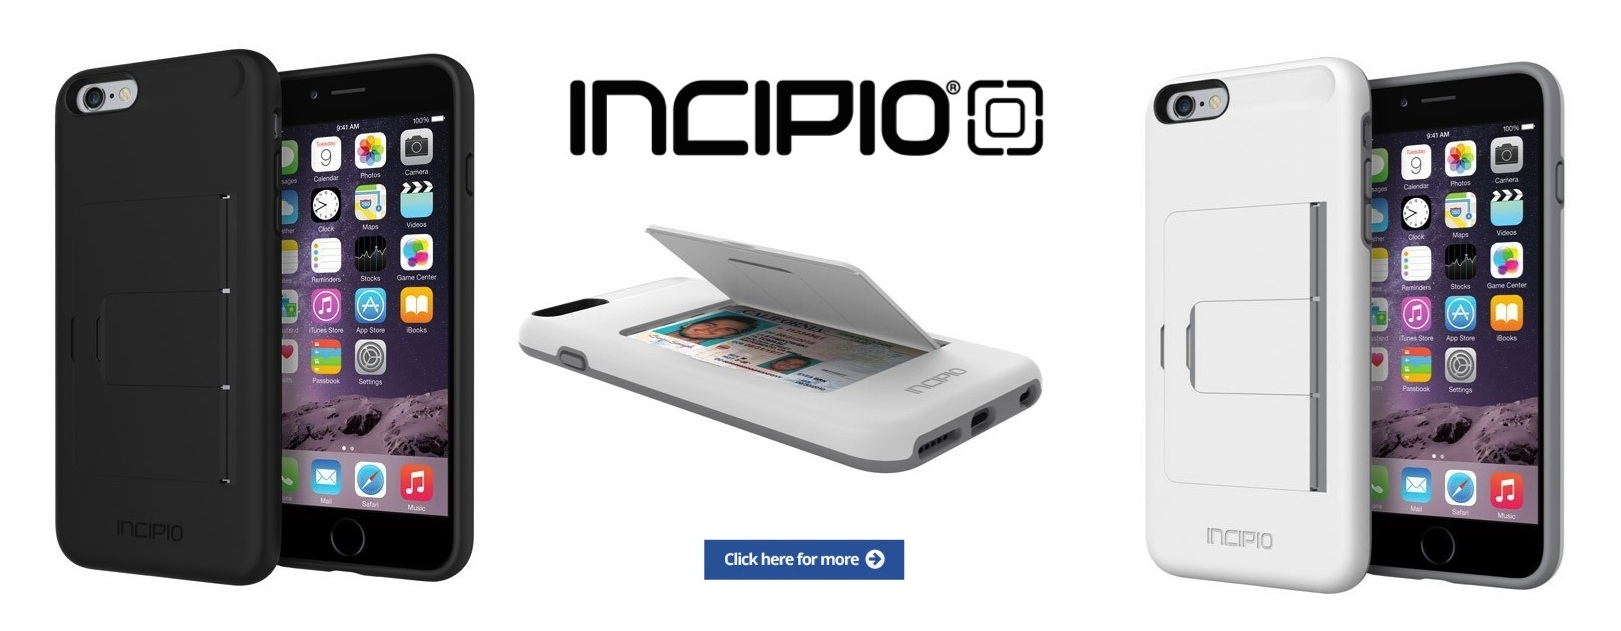 INCIPIO IPHONE 6 CASES